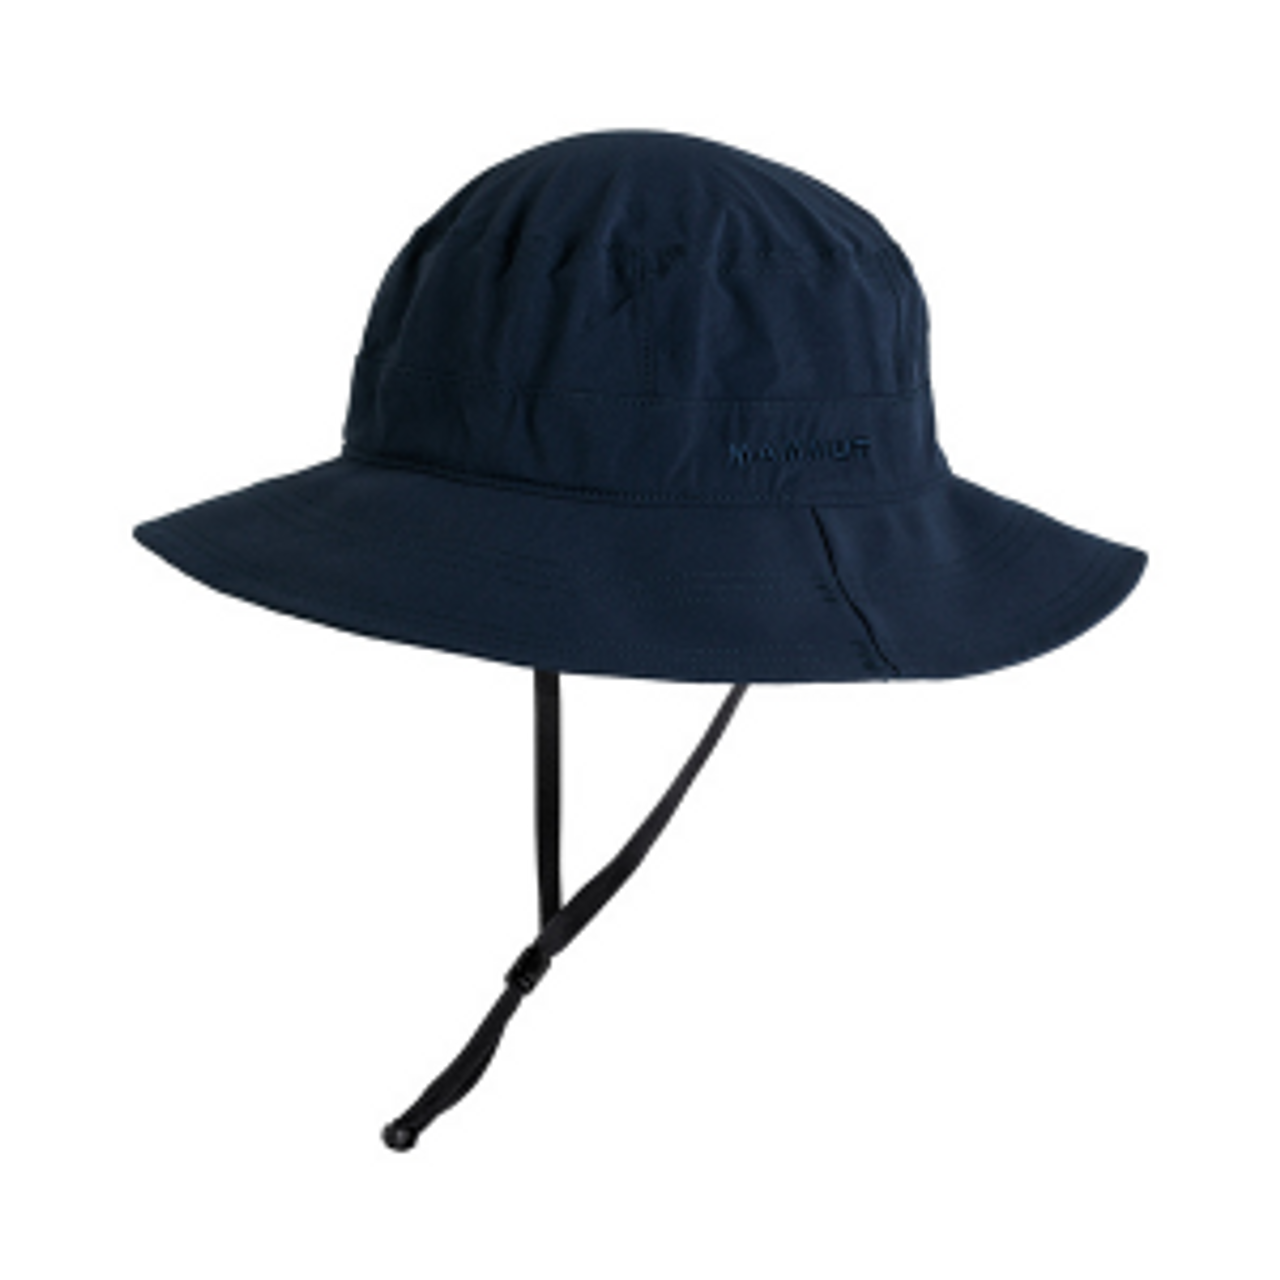 Mammut Runbold Hat - Marine - Online at Mountain Mail Order South Africa